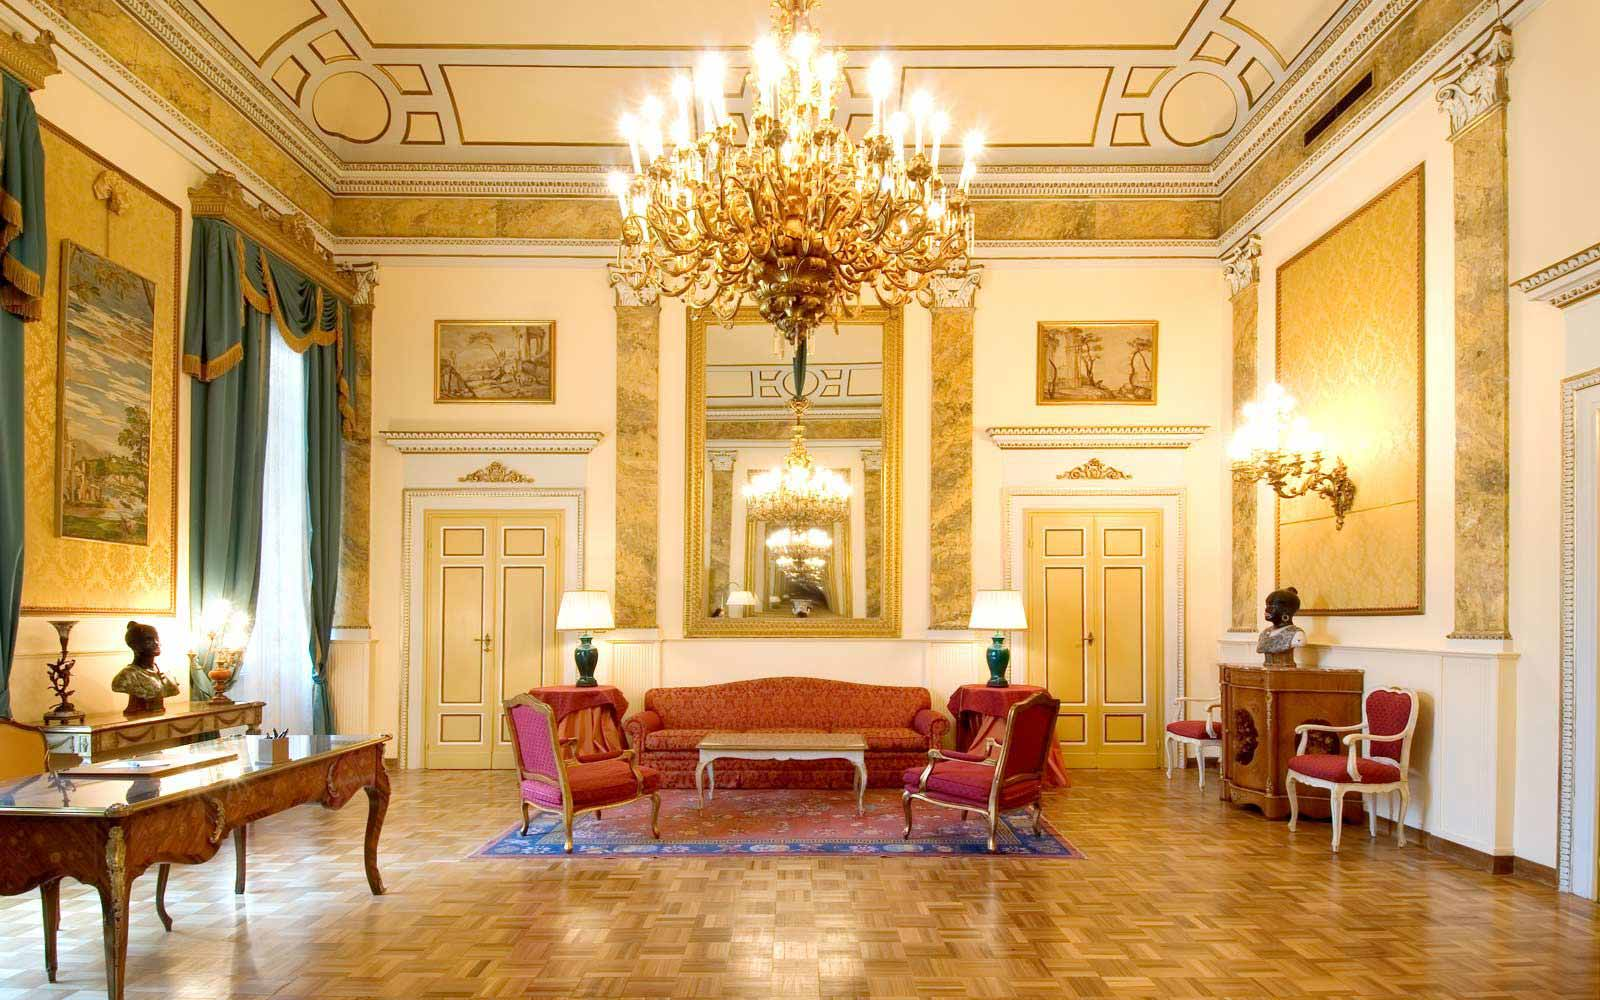 Reception hall at Grand Hotel Villa Medici